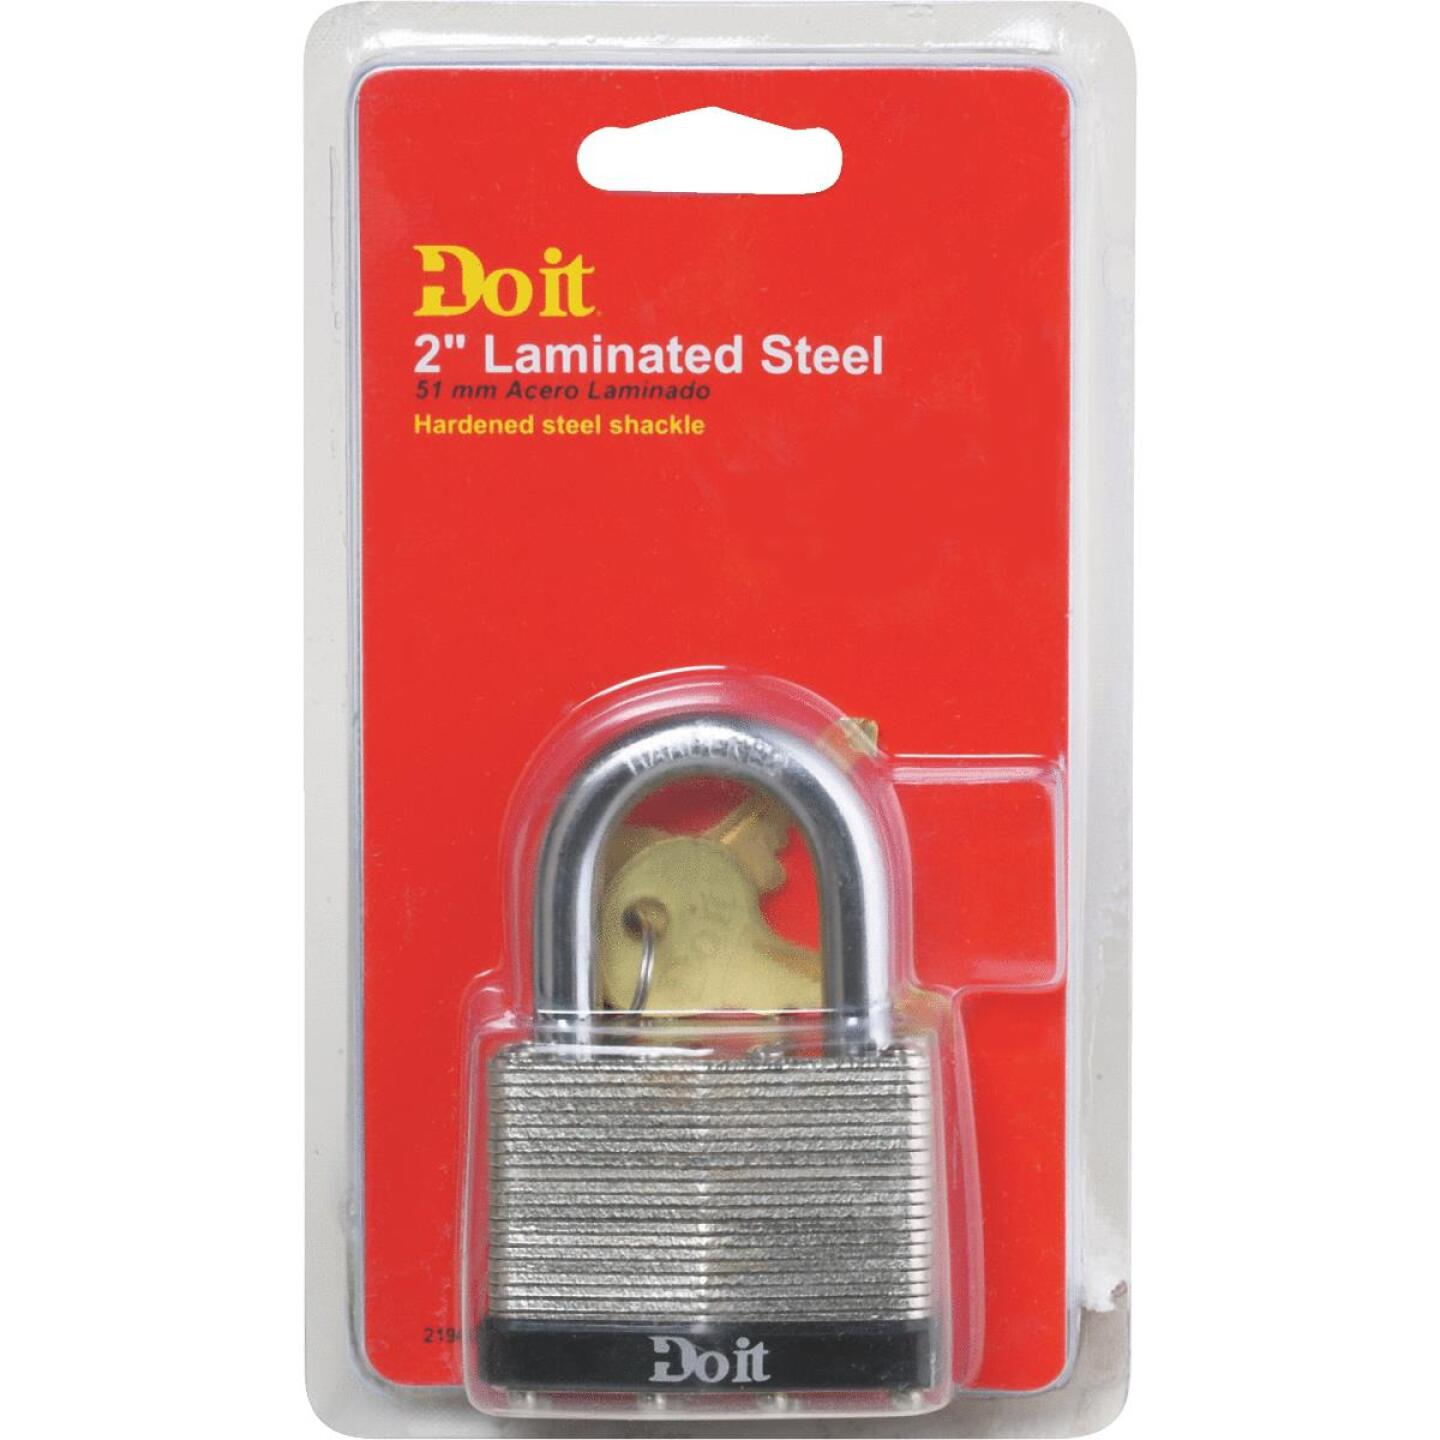 "Do it Laminated Steel 2"" Laminated Pin Tumbler Padlock Image 2"